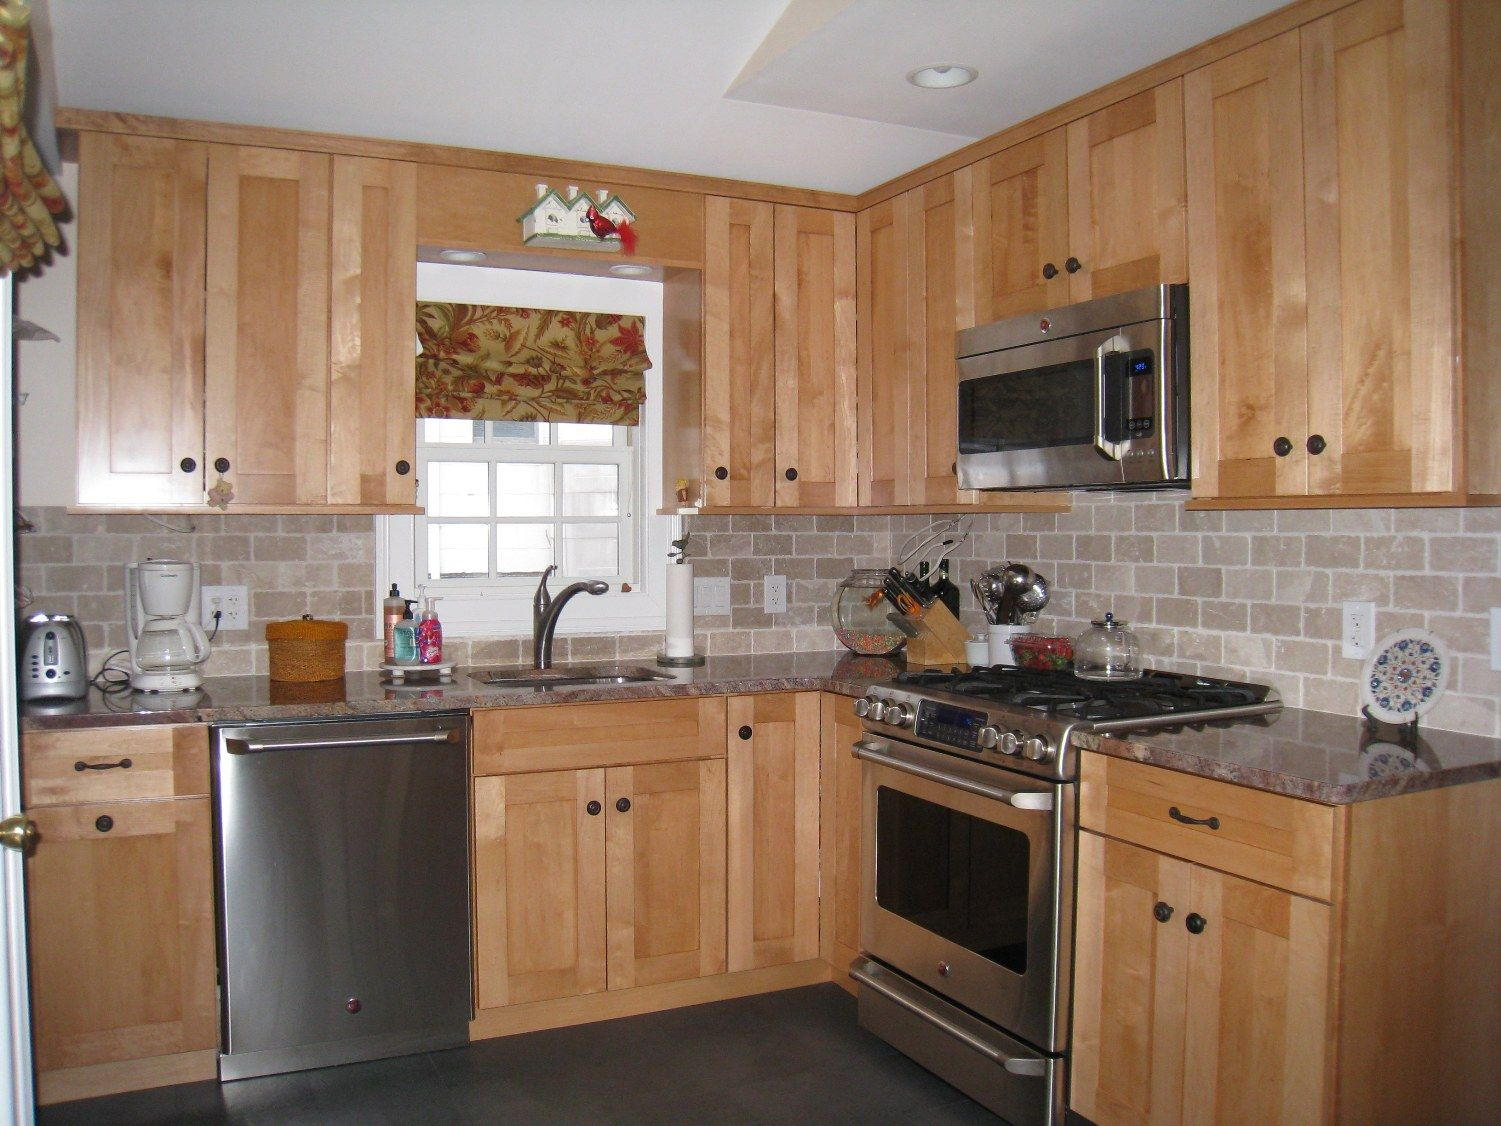 How About Boosting Your Small Kitchen With Inspiring Ideas Maple Kitchen Cabinets Used Kitchen Cabinets Shaker Kitchen Cabinets